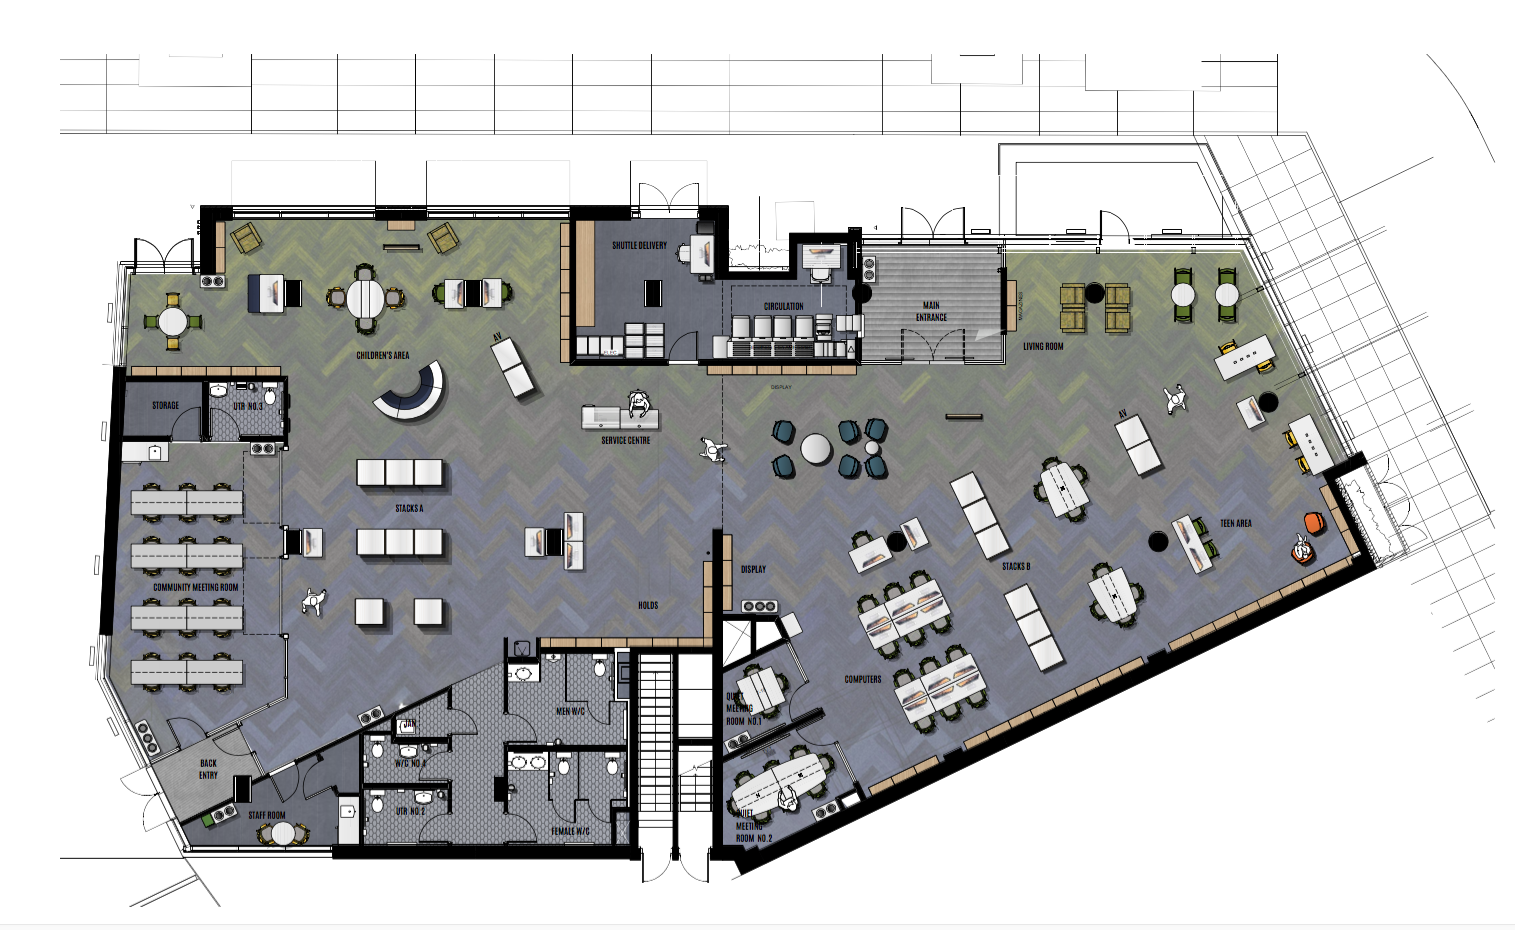 Image Caption  :   Architect's plan of the sxʷe    ŋ'    xʷəŋ ta    ŋ'    exw James Bay Branch Library. The children's area is in the top left, while the teen area is on the bottom right, just below the laptop bar and mobile charging stations. Library assistance is provided from the central desk, while circulation is at the top centre. The main set of 12 computer stations are near centre bottom. The larger meeting room has seating for 24 and can be separated from the main library through vertically sliding dividers. The other meeting rooms are just to left of the computer stations. Image provided by GVPL